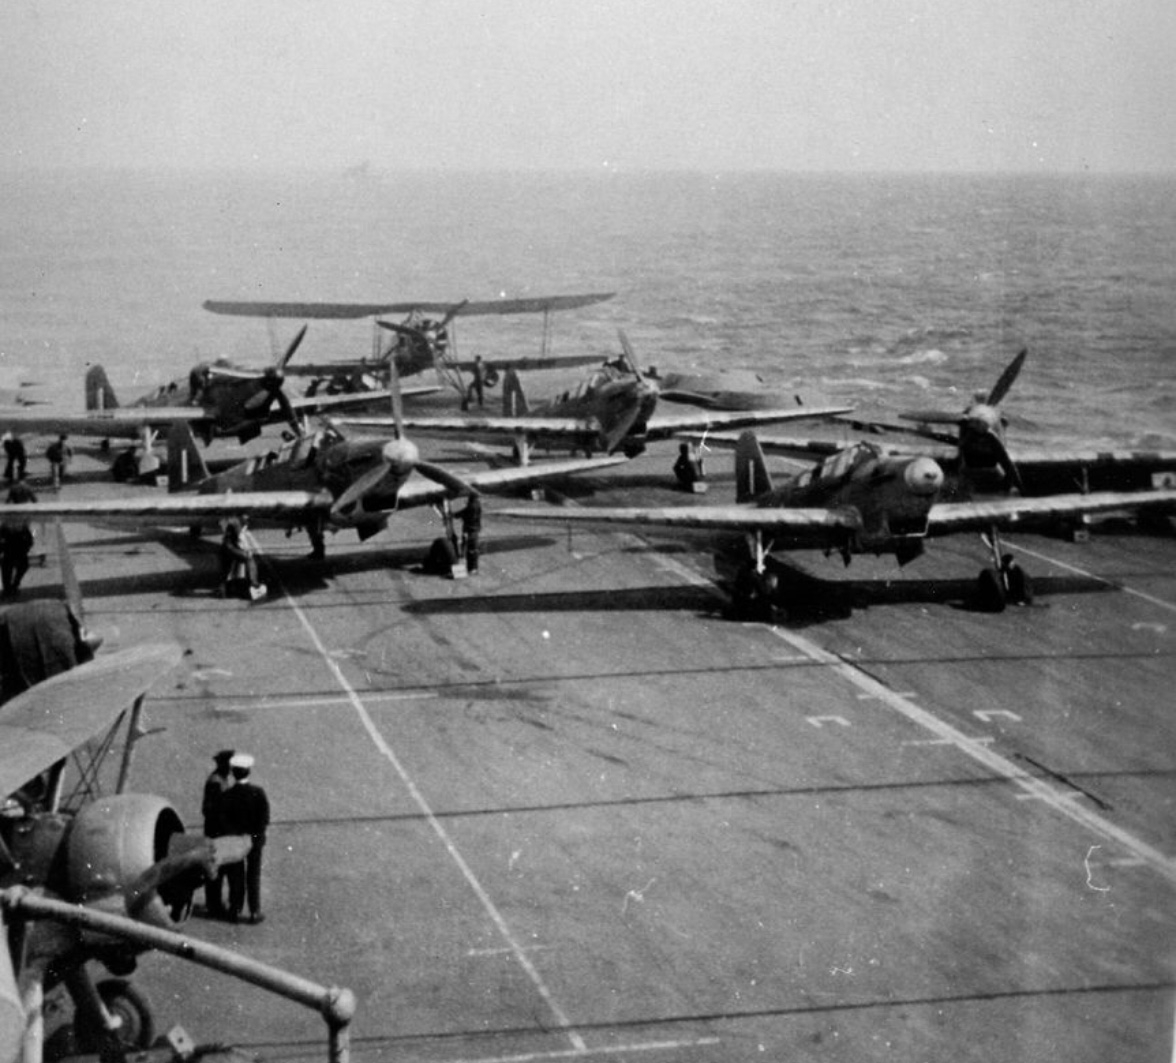 Fulmars of 806 Squadron and a Swordfish ranged on HMS Illustrious in November 1940. Note the two Sea Gladiators of 813 Fighter Flight tucked away aft of the island. They were transferred from HMS Eagle for the Taranto strike to increase the number of fighters on board.